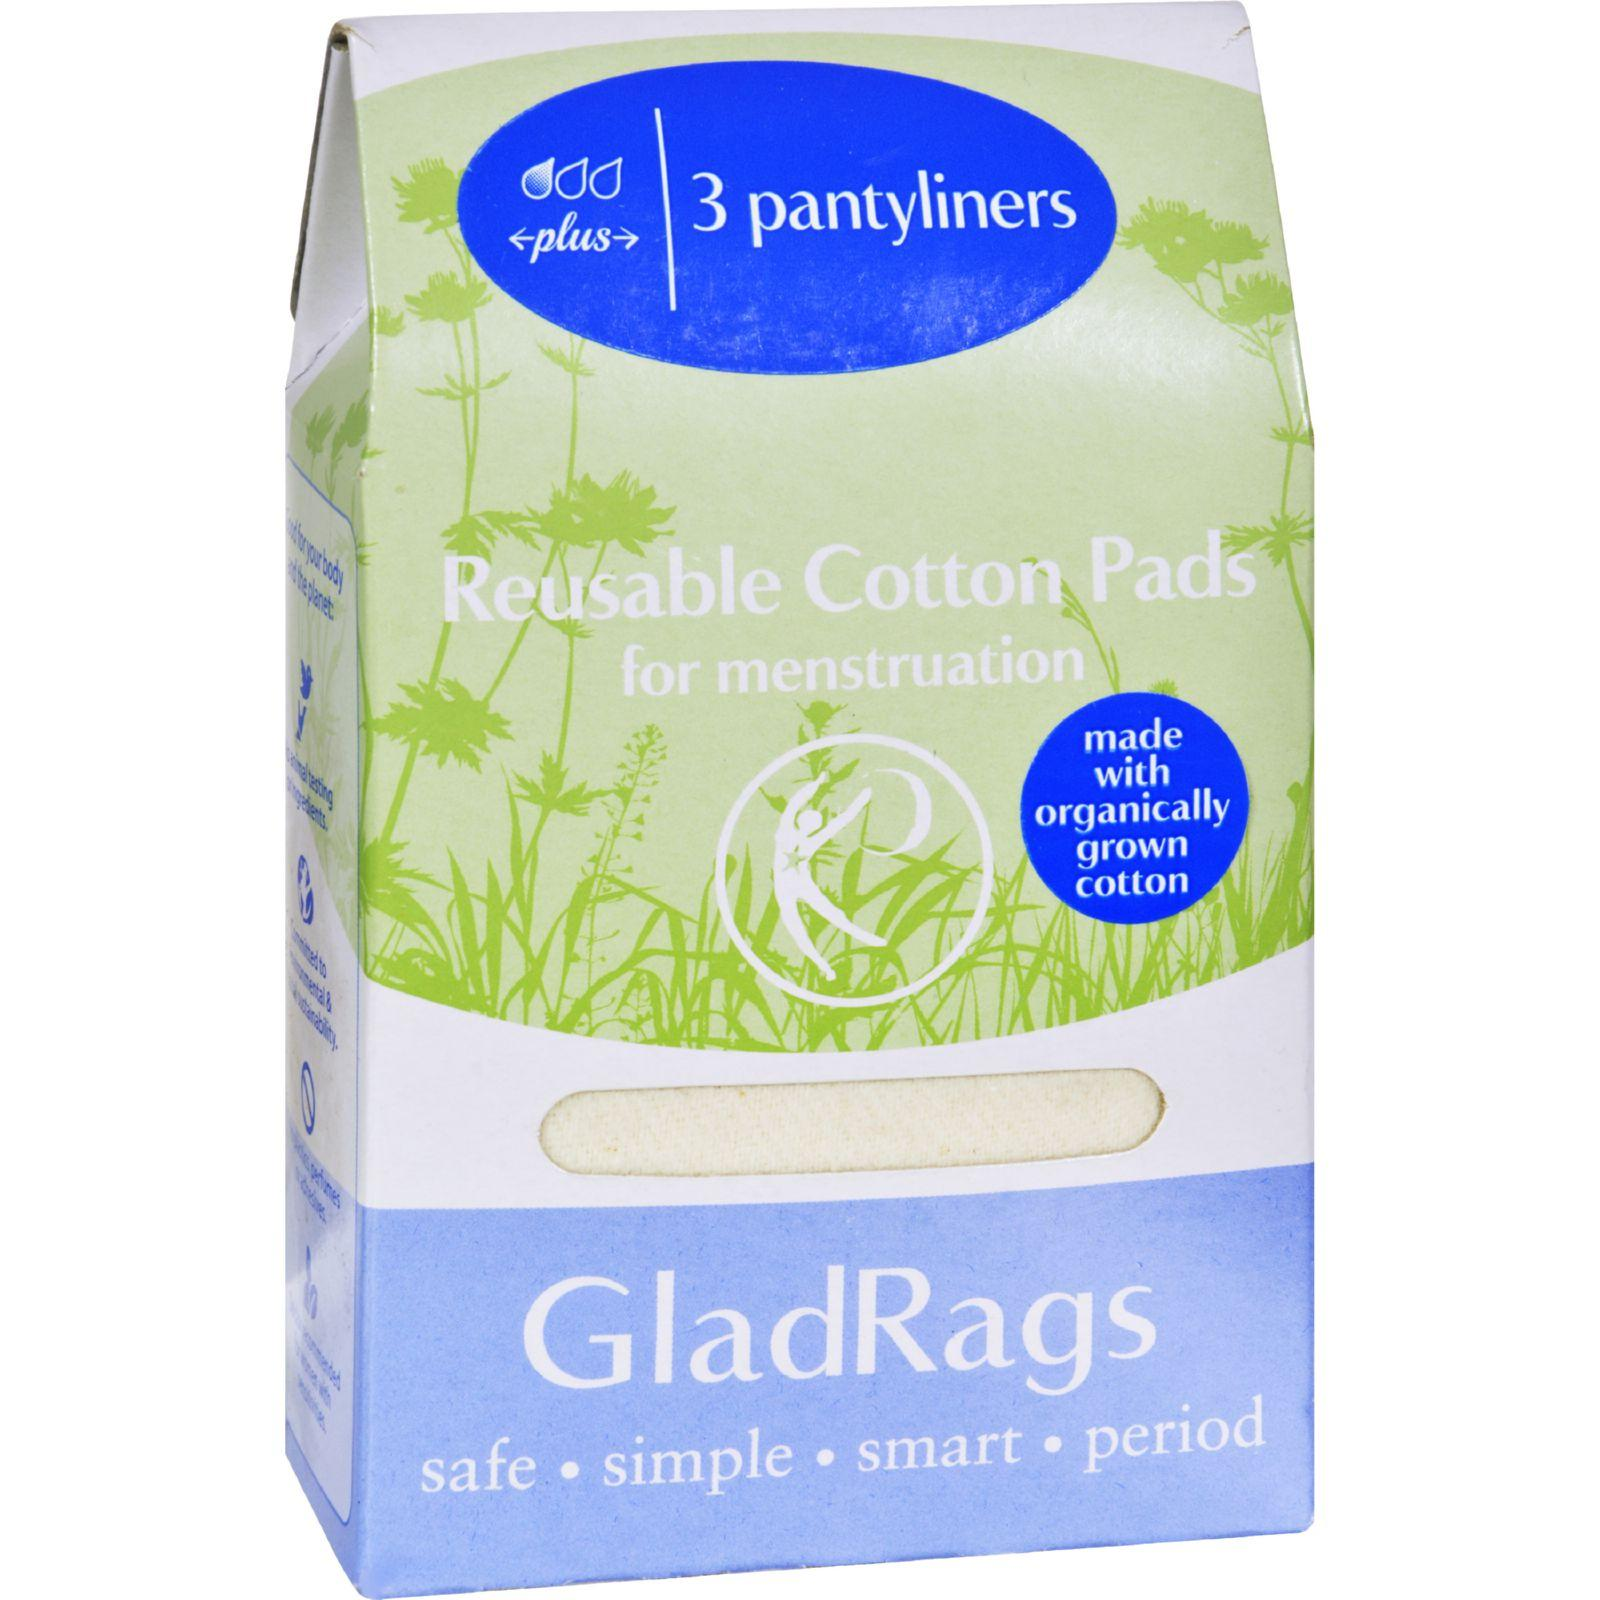 Gladrags Organic Cotton Pantyliner Plus - Undyed - 3 Pack (Reusable Cloth Panty Liners)